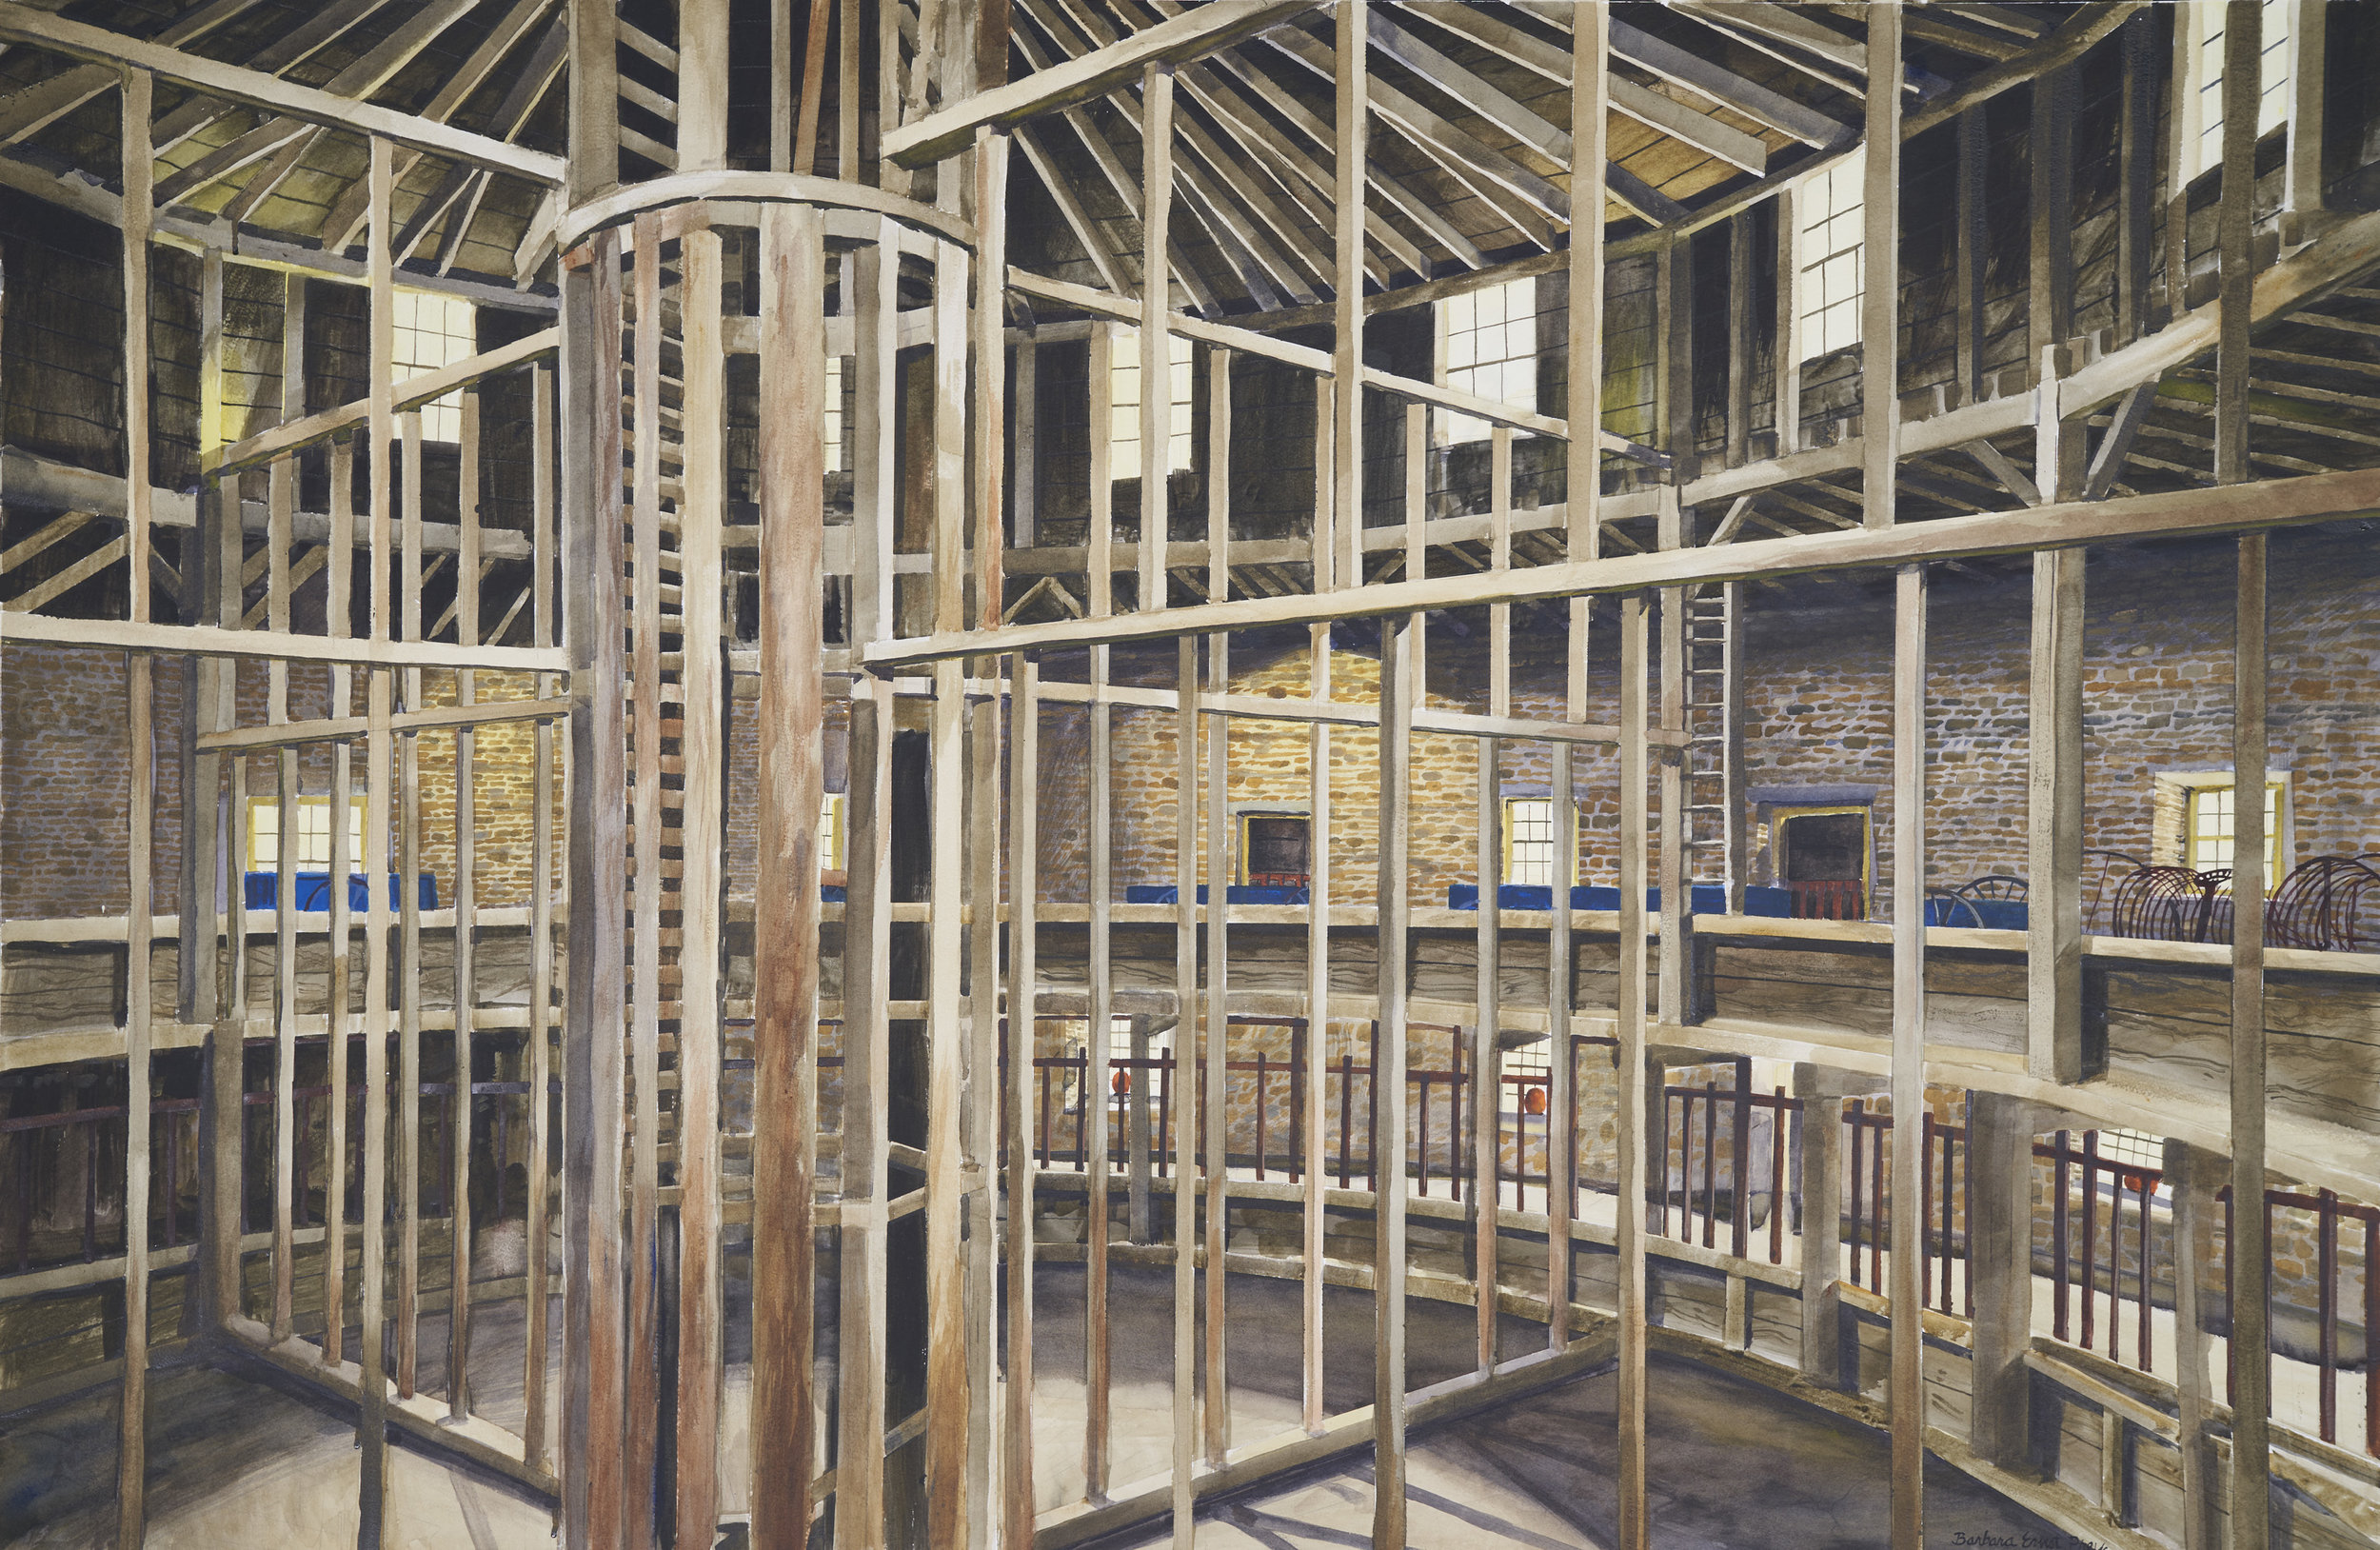 Wood Work, 2019, Watercolor and drybrush on paper, 40 x 60 inches